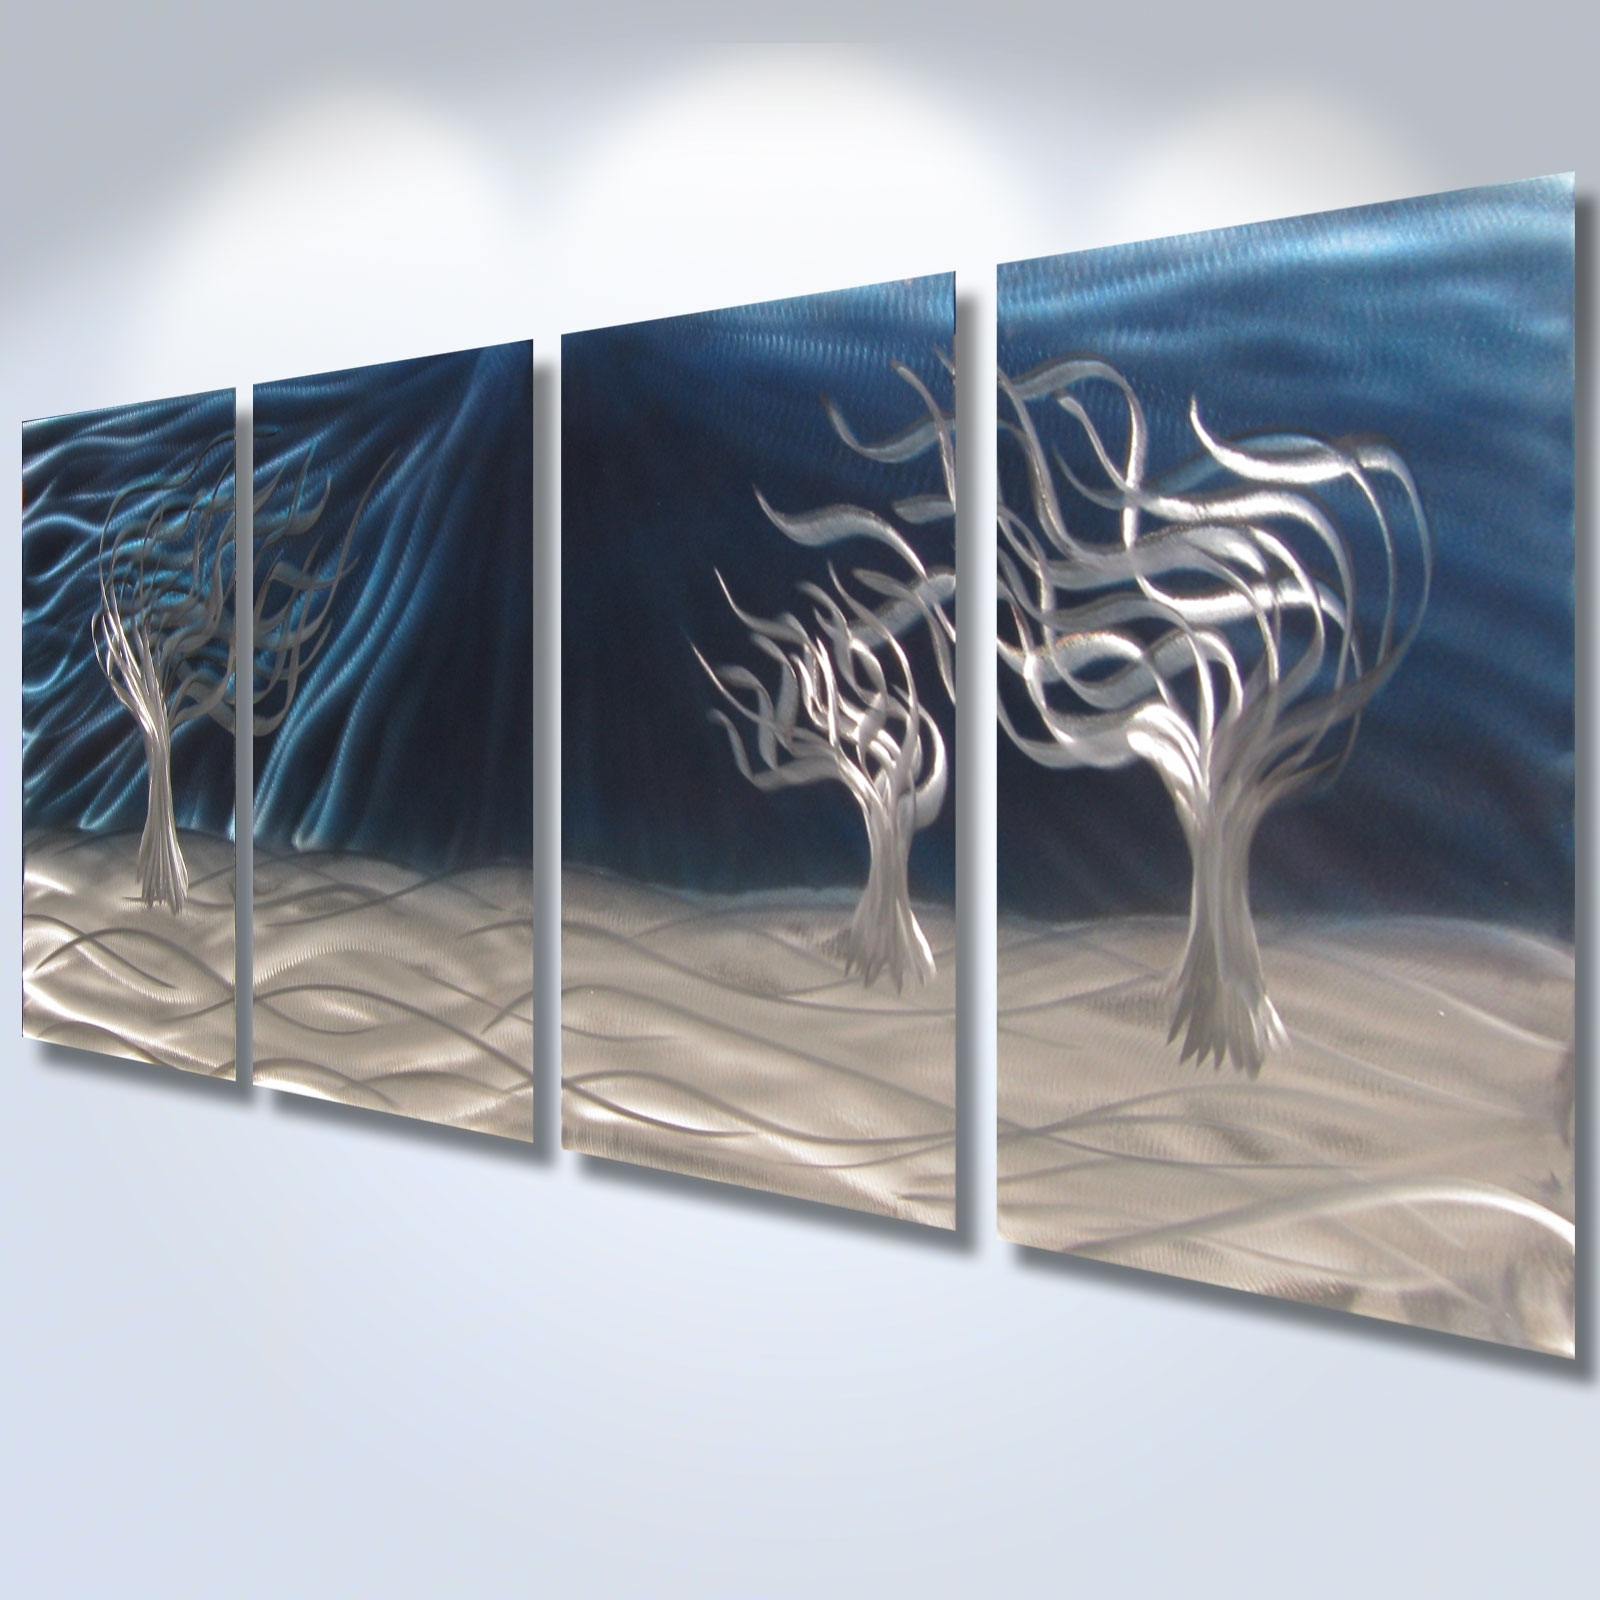 3 Trees Blue – Abstract Metal Wall Art Contemporary Modern Decor Within 2018 Abstract Metal Wall Art With Clock (View 2 of 20)